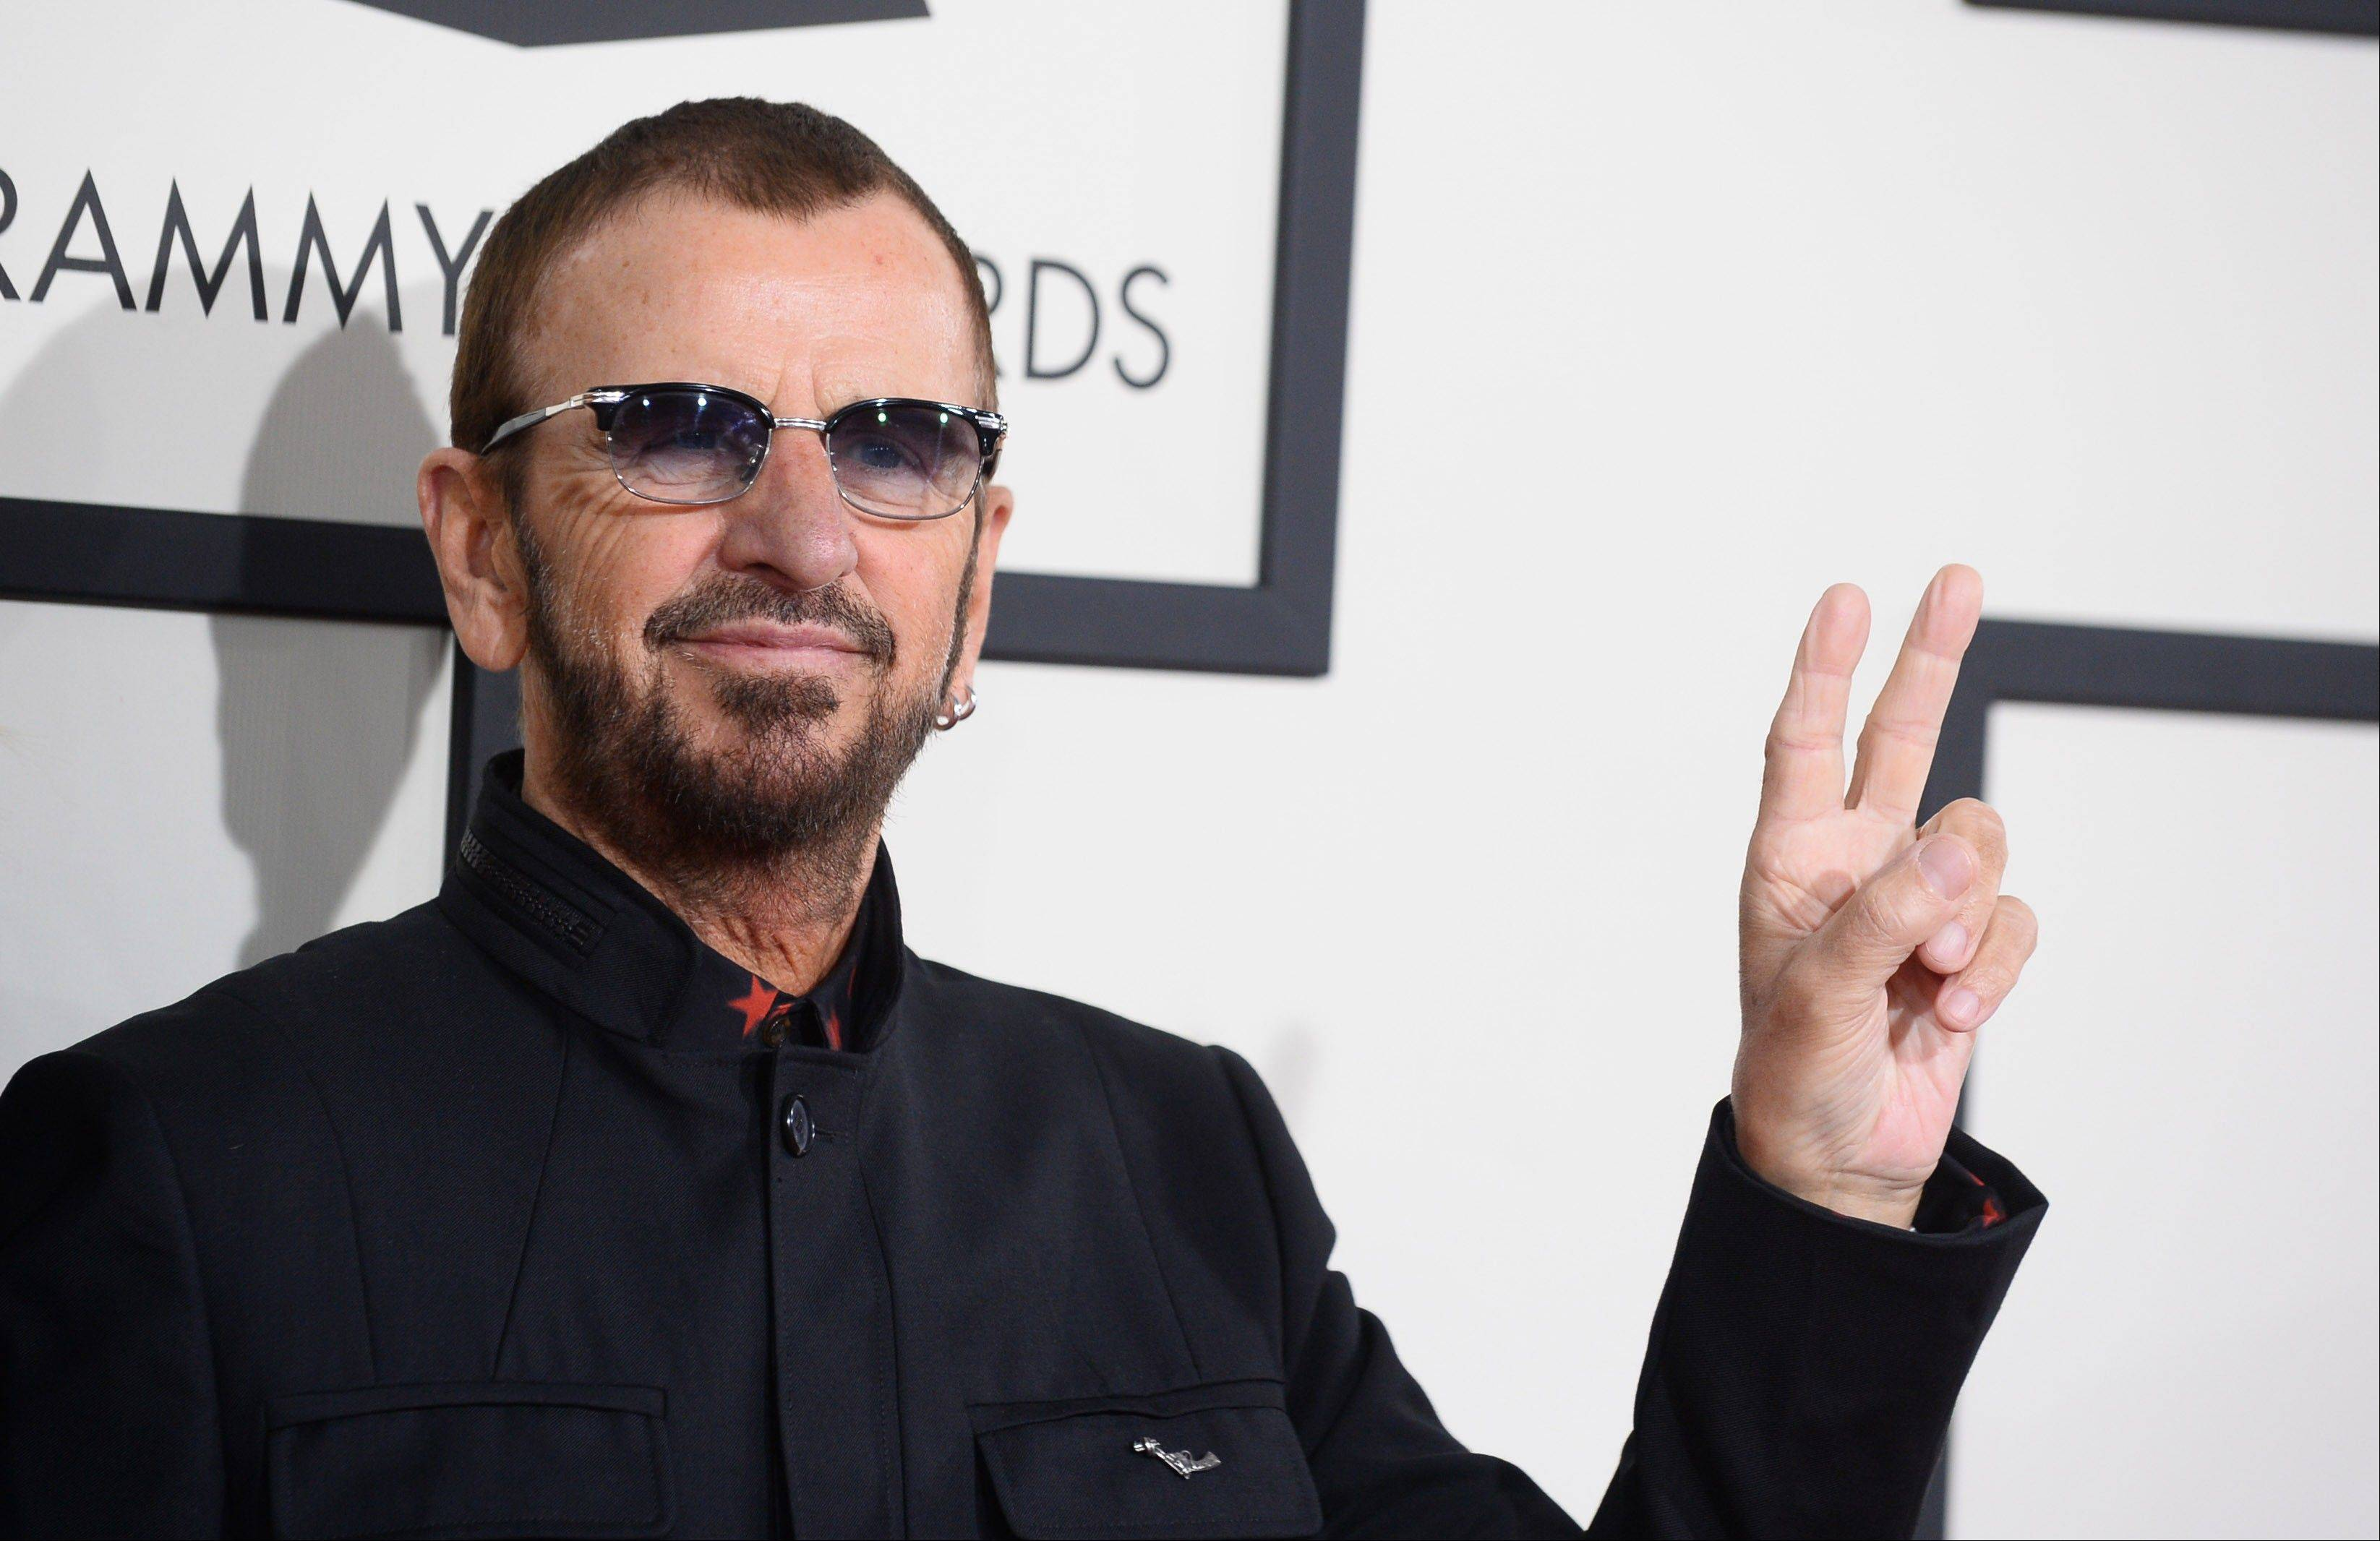 Ringo Starr arrives at the 56th annual Grammy Awards at Staples Center on Sunday in Los Angeles. The Beatles were being honored with a Lifetime Achievement Award.